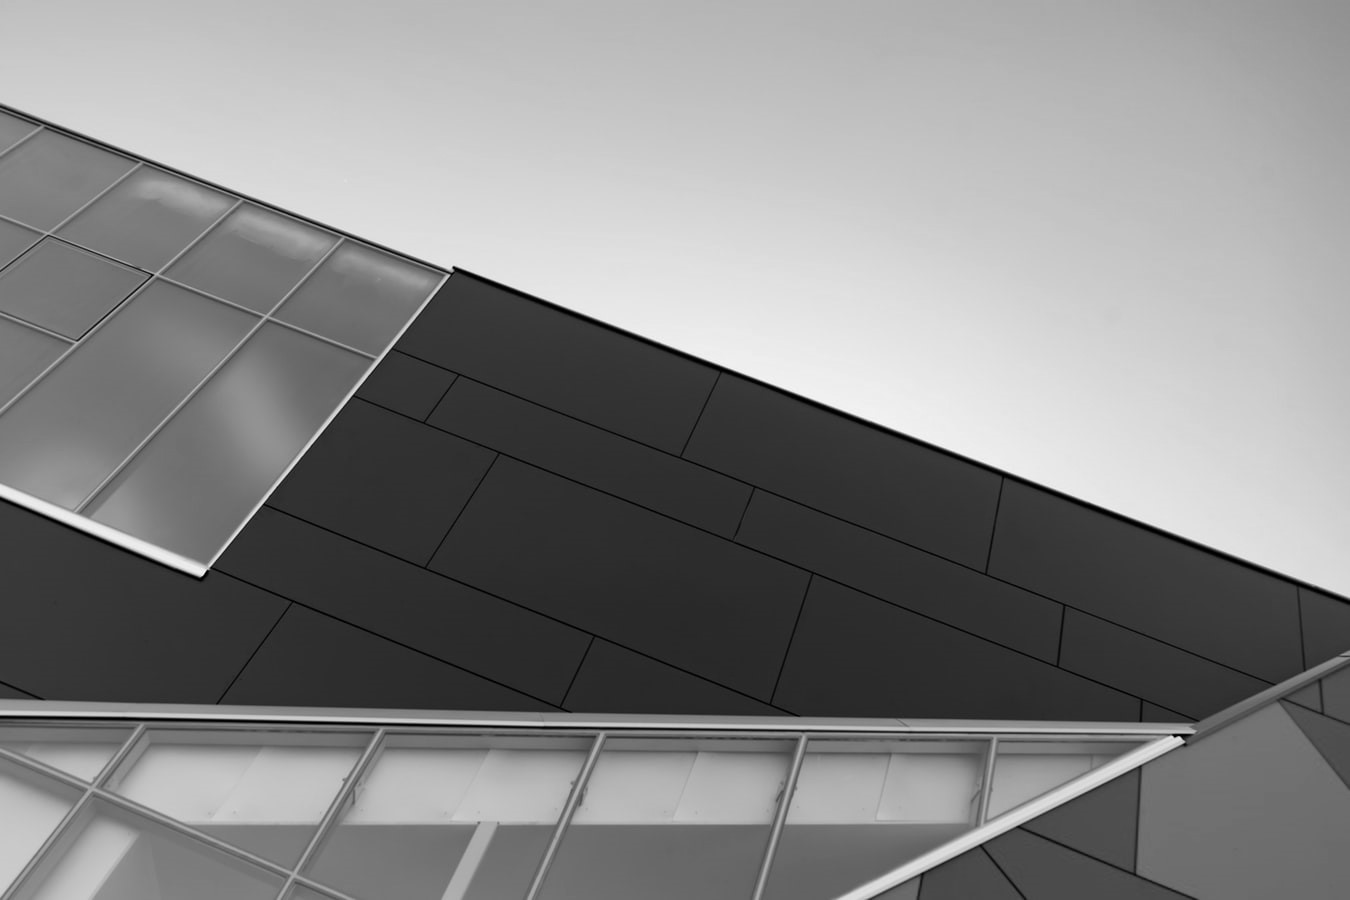 cladding-bw.jpeg